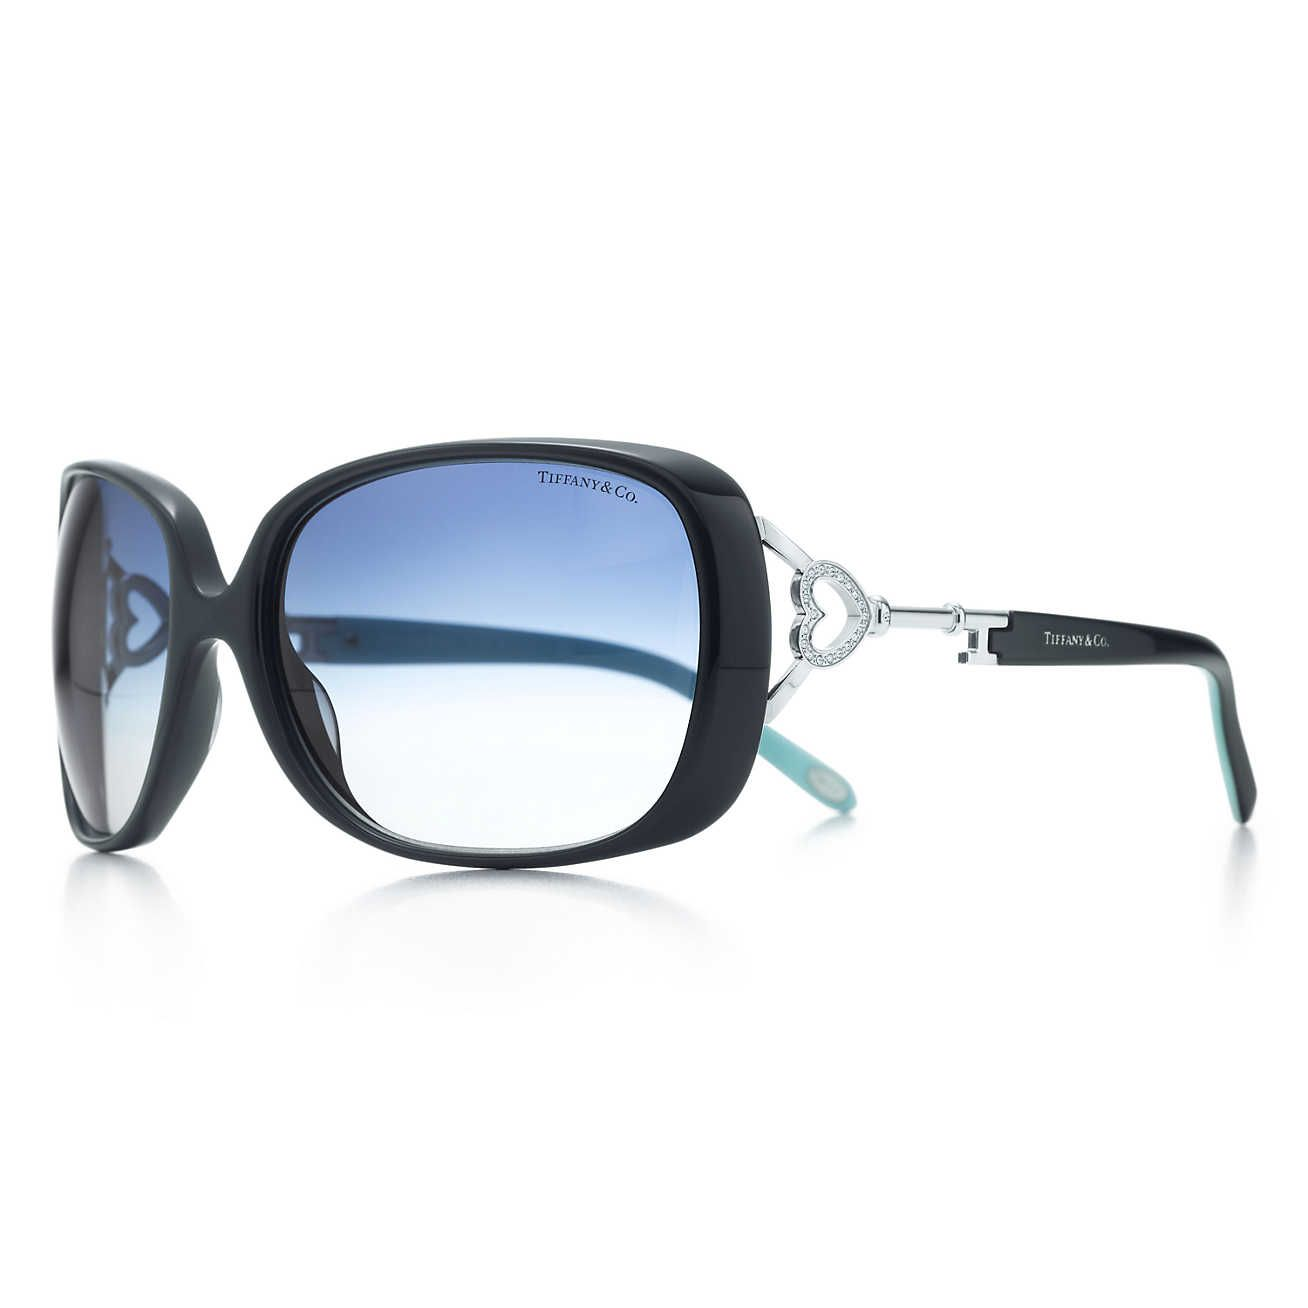 3a6ae4398650 Tiffany Keys rectangular sunglasses in black acetate with Austrian crystals.